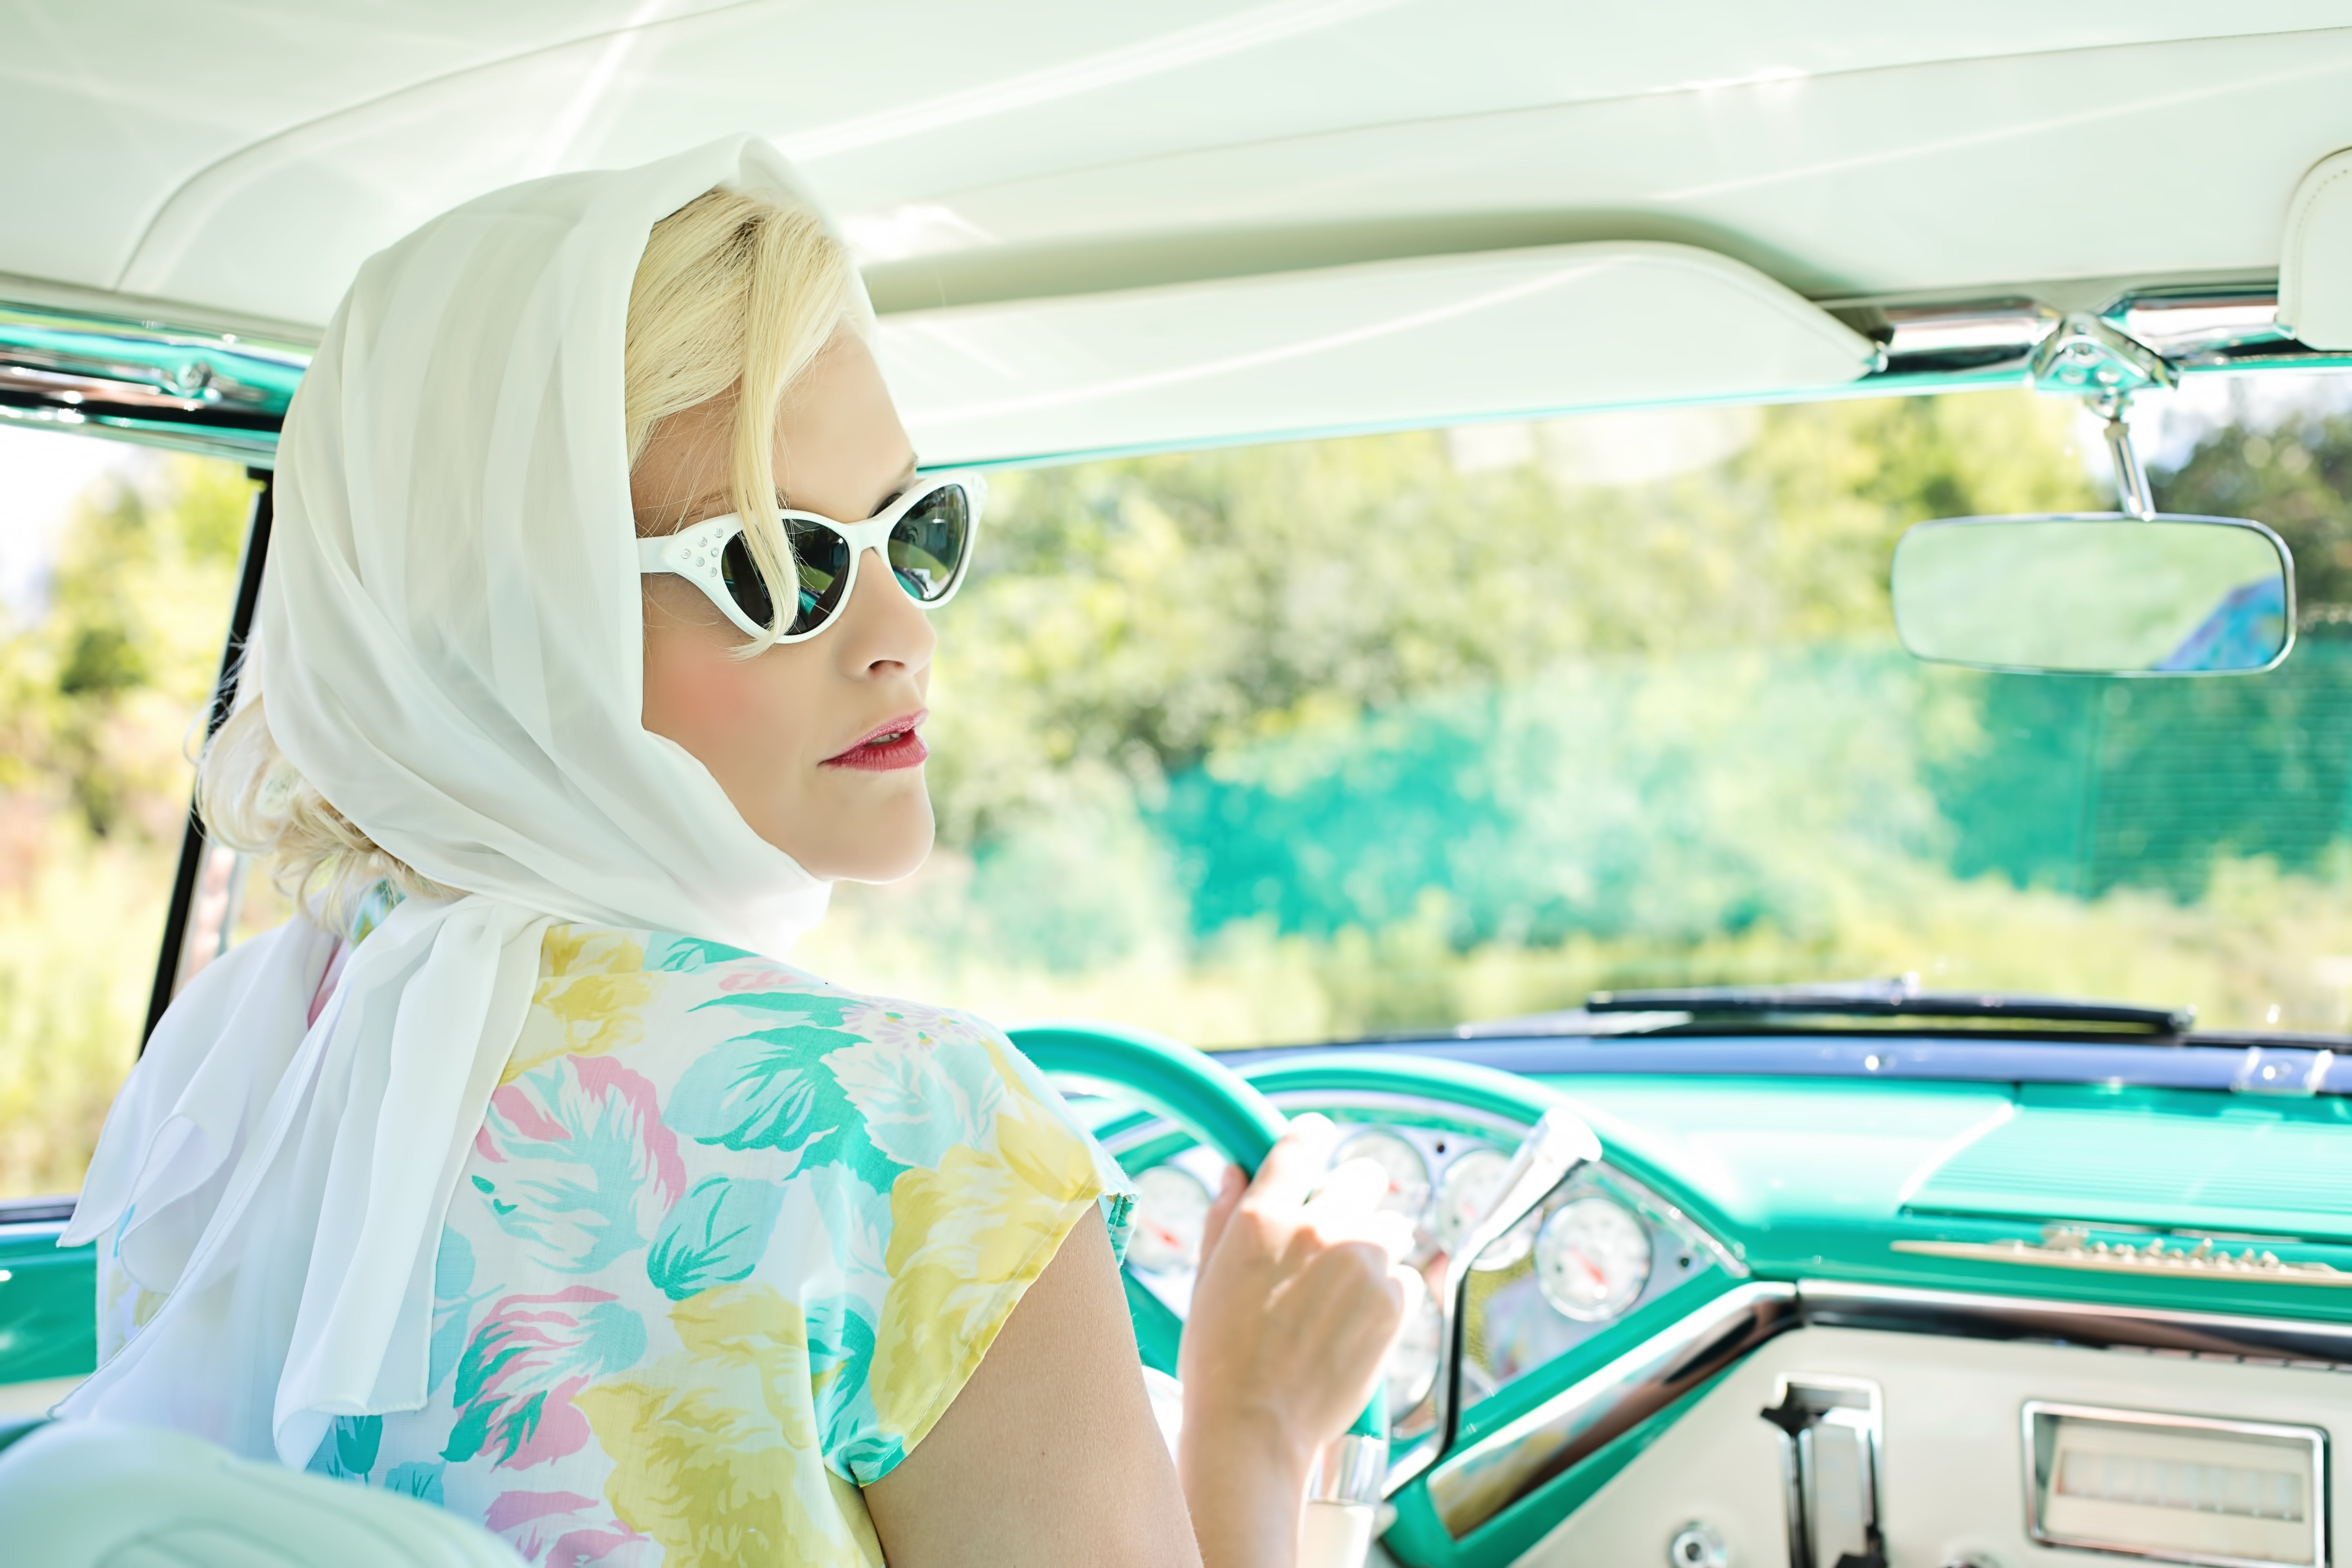 Woman Driving Vintage Car on Road during Daytime